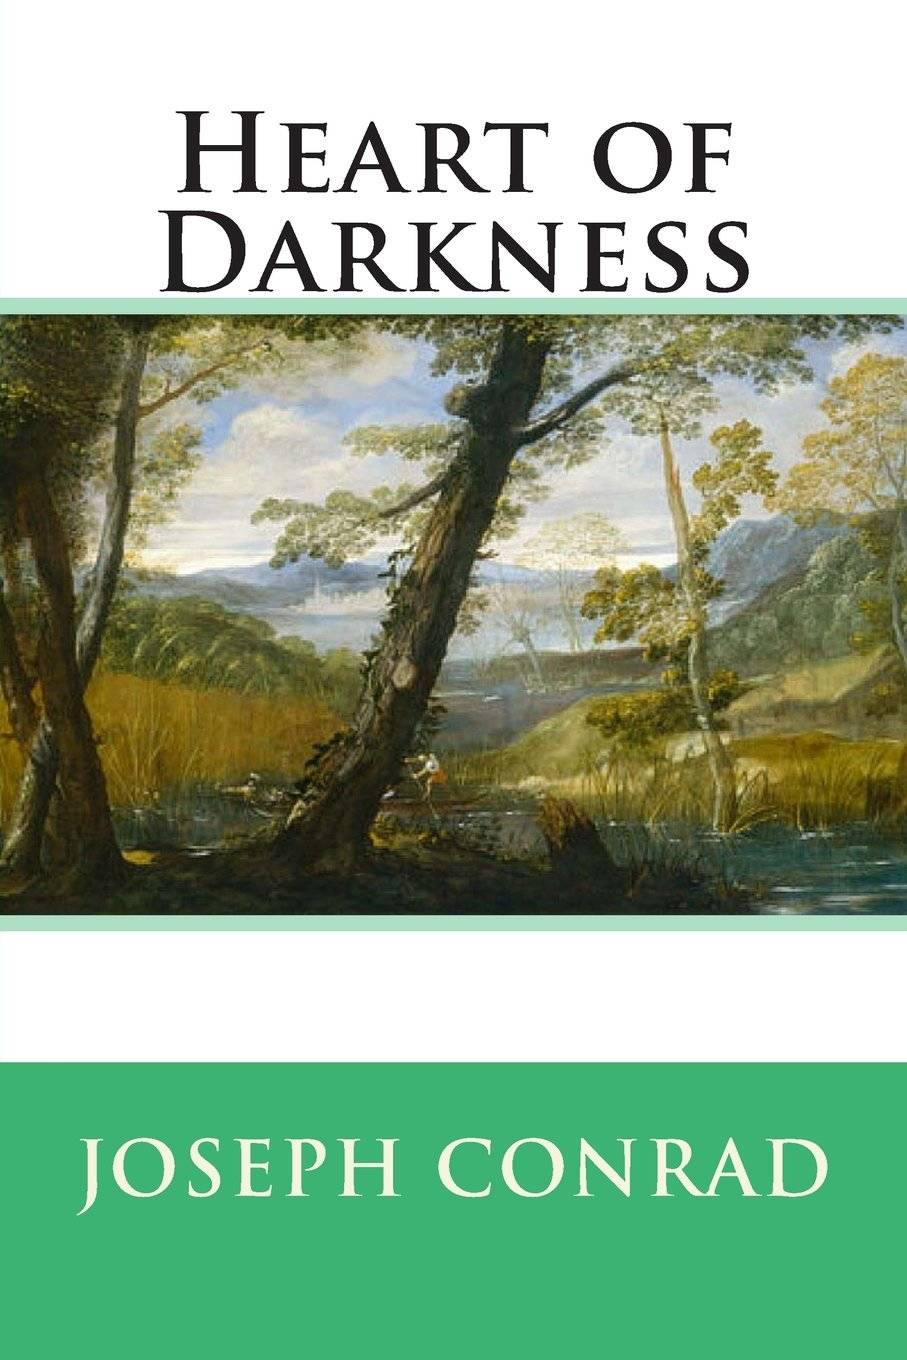 the portrayal of the women in heart of darkness a novel by joseph conrad This article looks at several female characters in joseph conrad's heart of darkness, including marlow's aunt, kurtz's fiancee, and kurtz's african mistress and focuses on the role of women in heart of darkness.